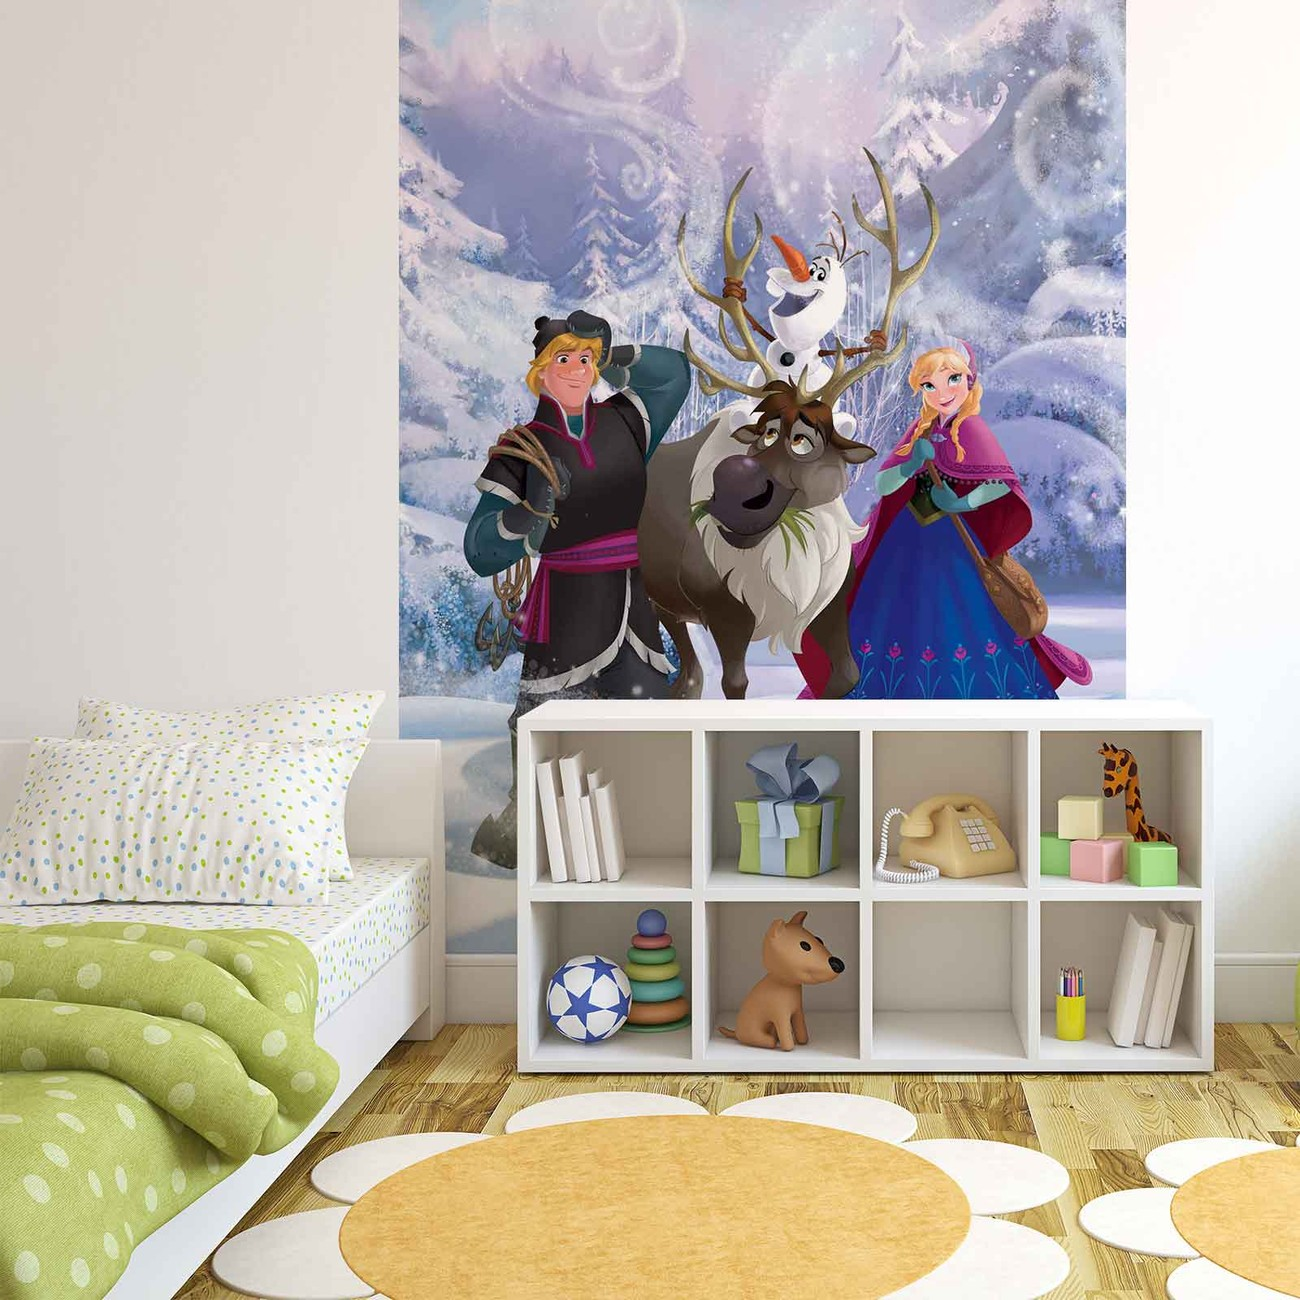 Disney frozen wall paper mural buy at europosters for Disney wall mural uk